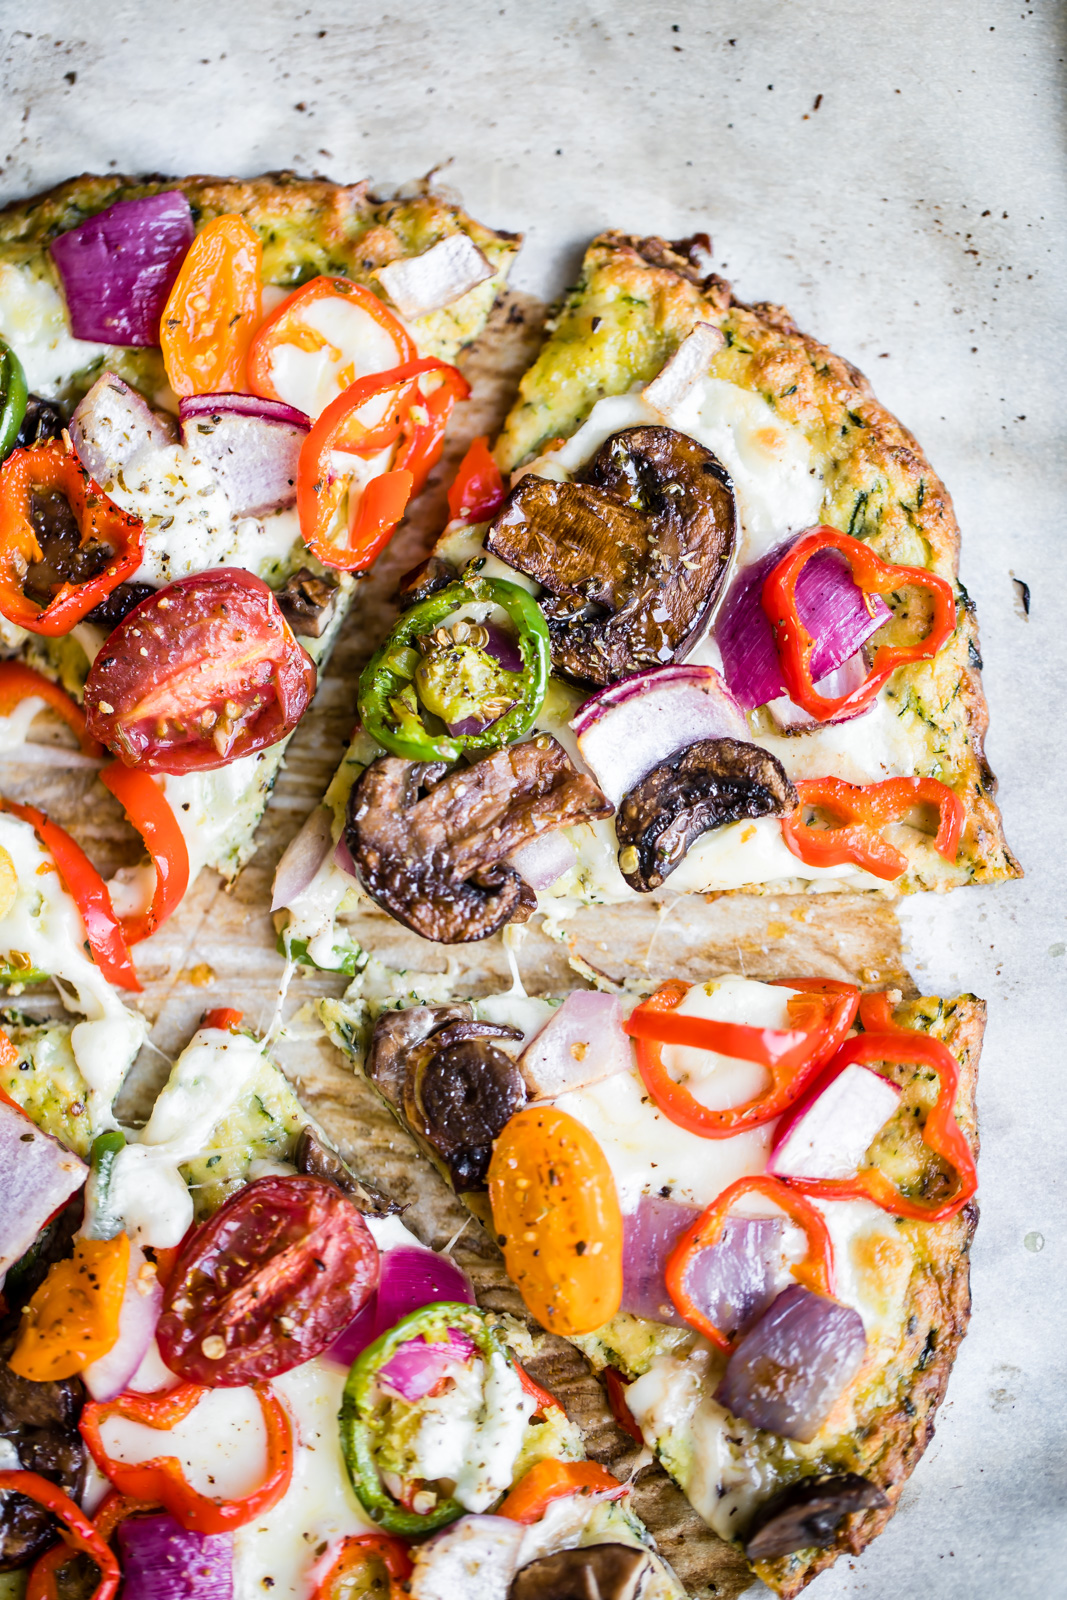 30 Healthy Dinner Recipes for Two - Zucchini Crust Veggie Pizza via Ambitious Kitchen | https://www.roseclearfield.com